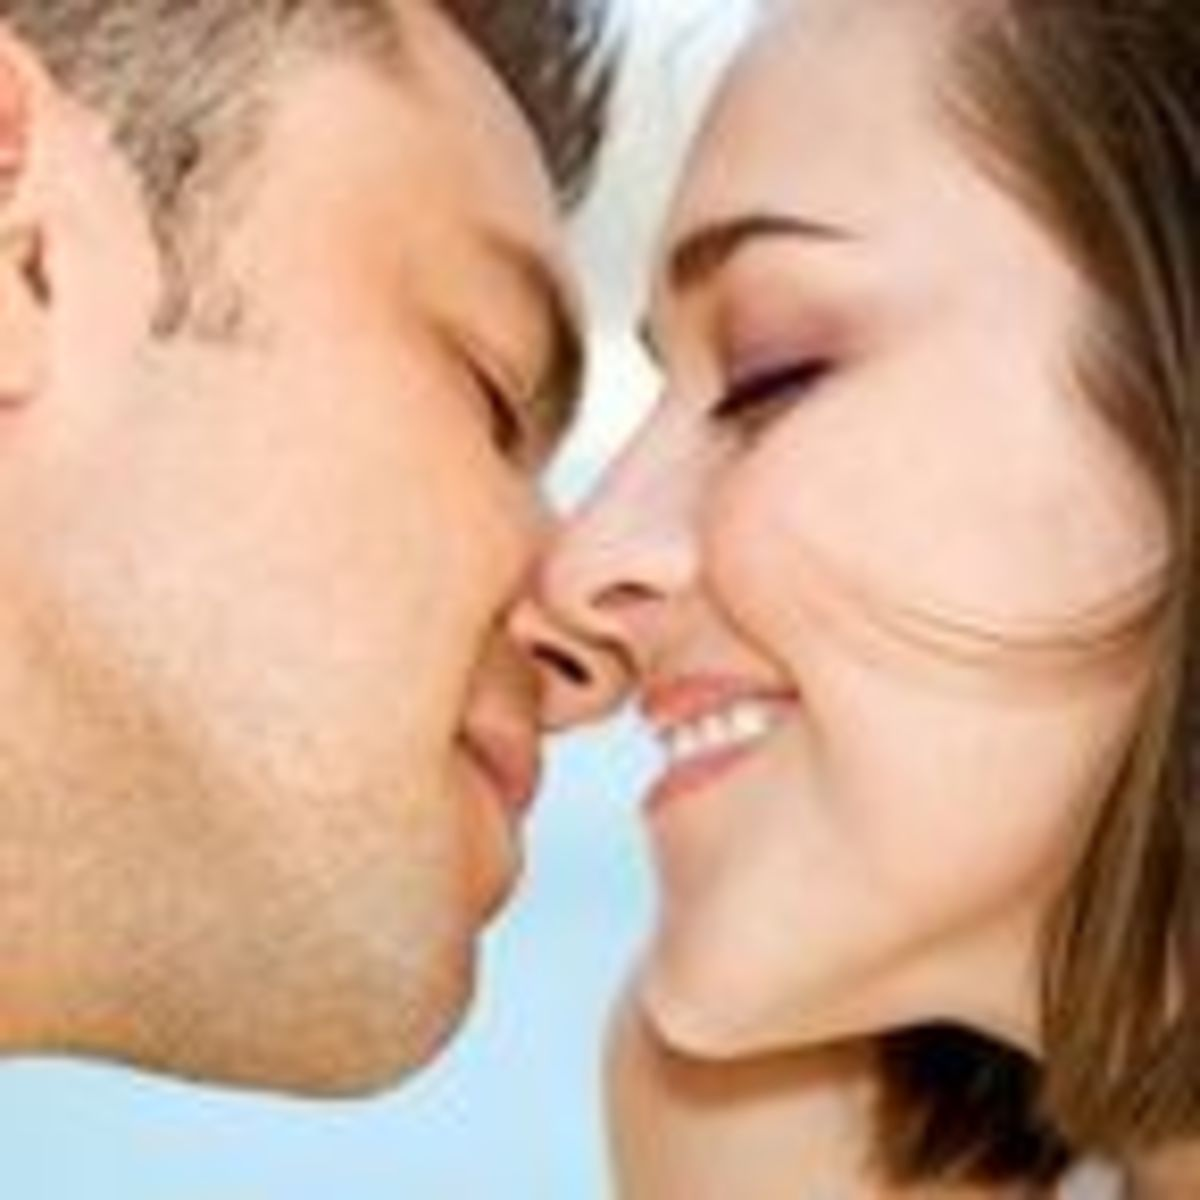 7 Signs You're in an Unhealthy Rebound Relationship | Psychology Today